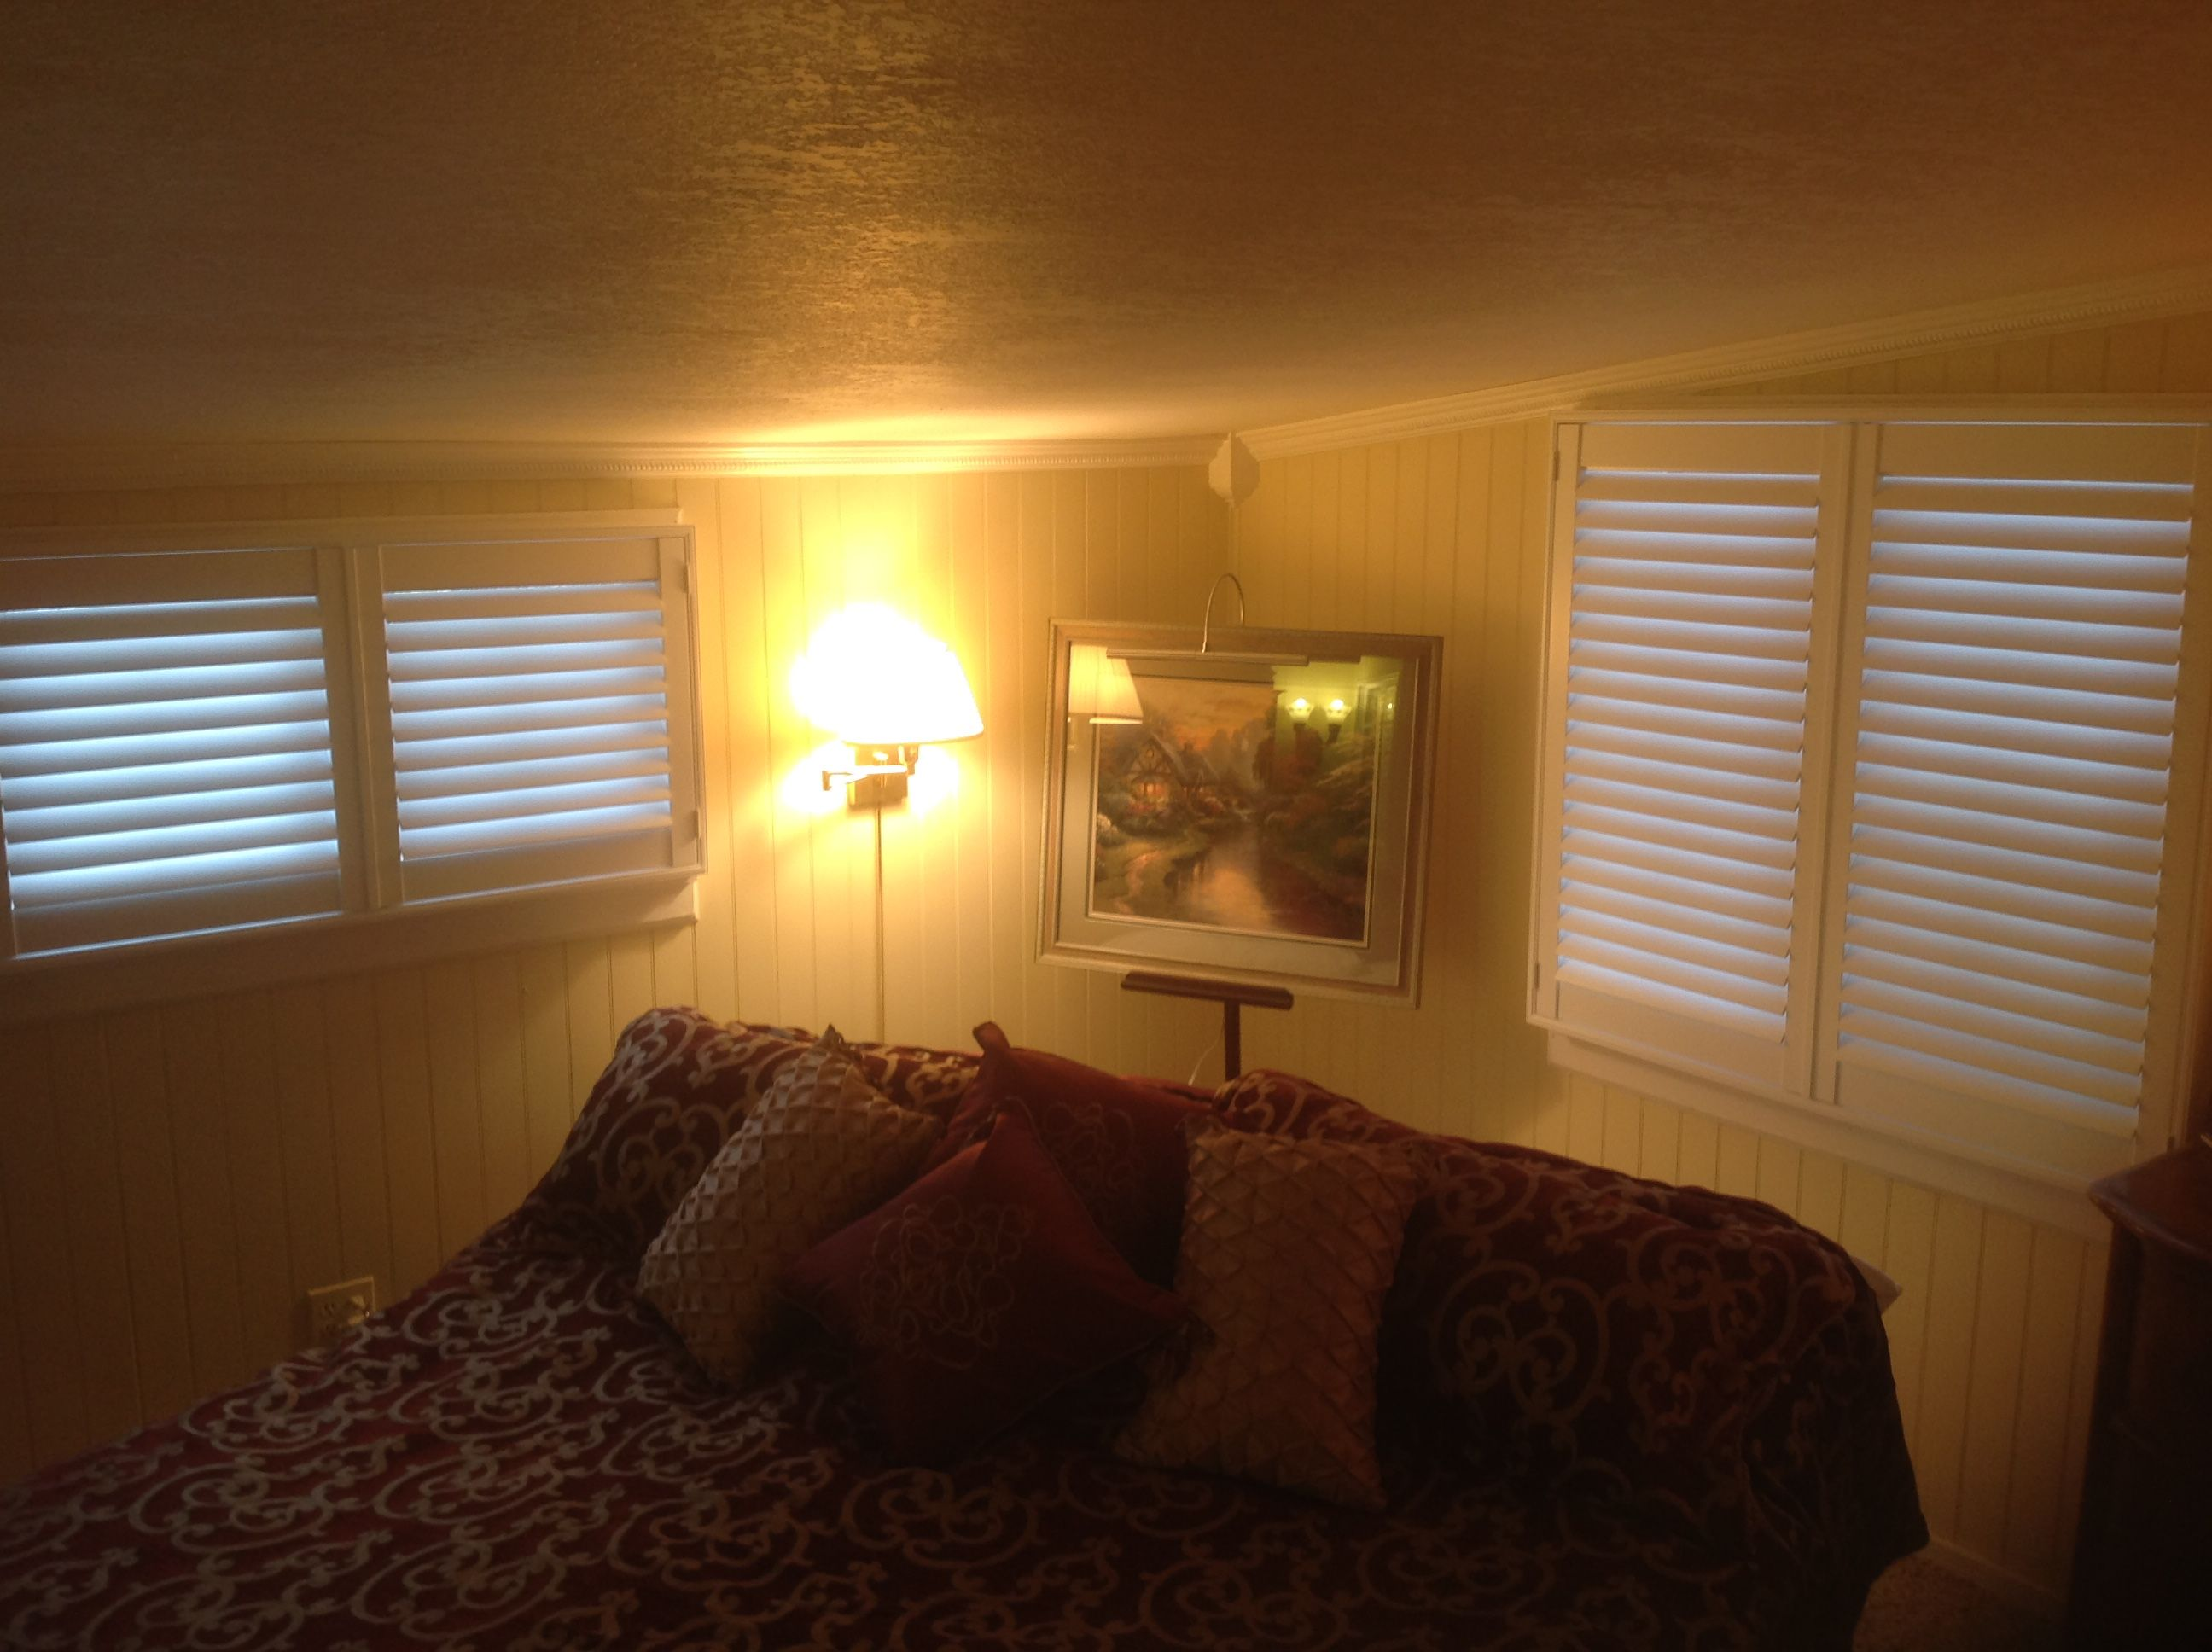 composite blinds img shutter plantation awnings internal shutters inside interior products